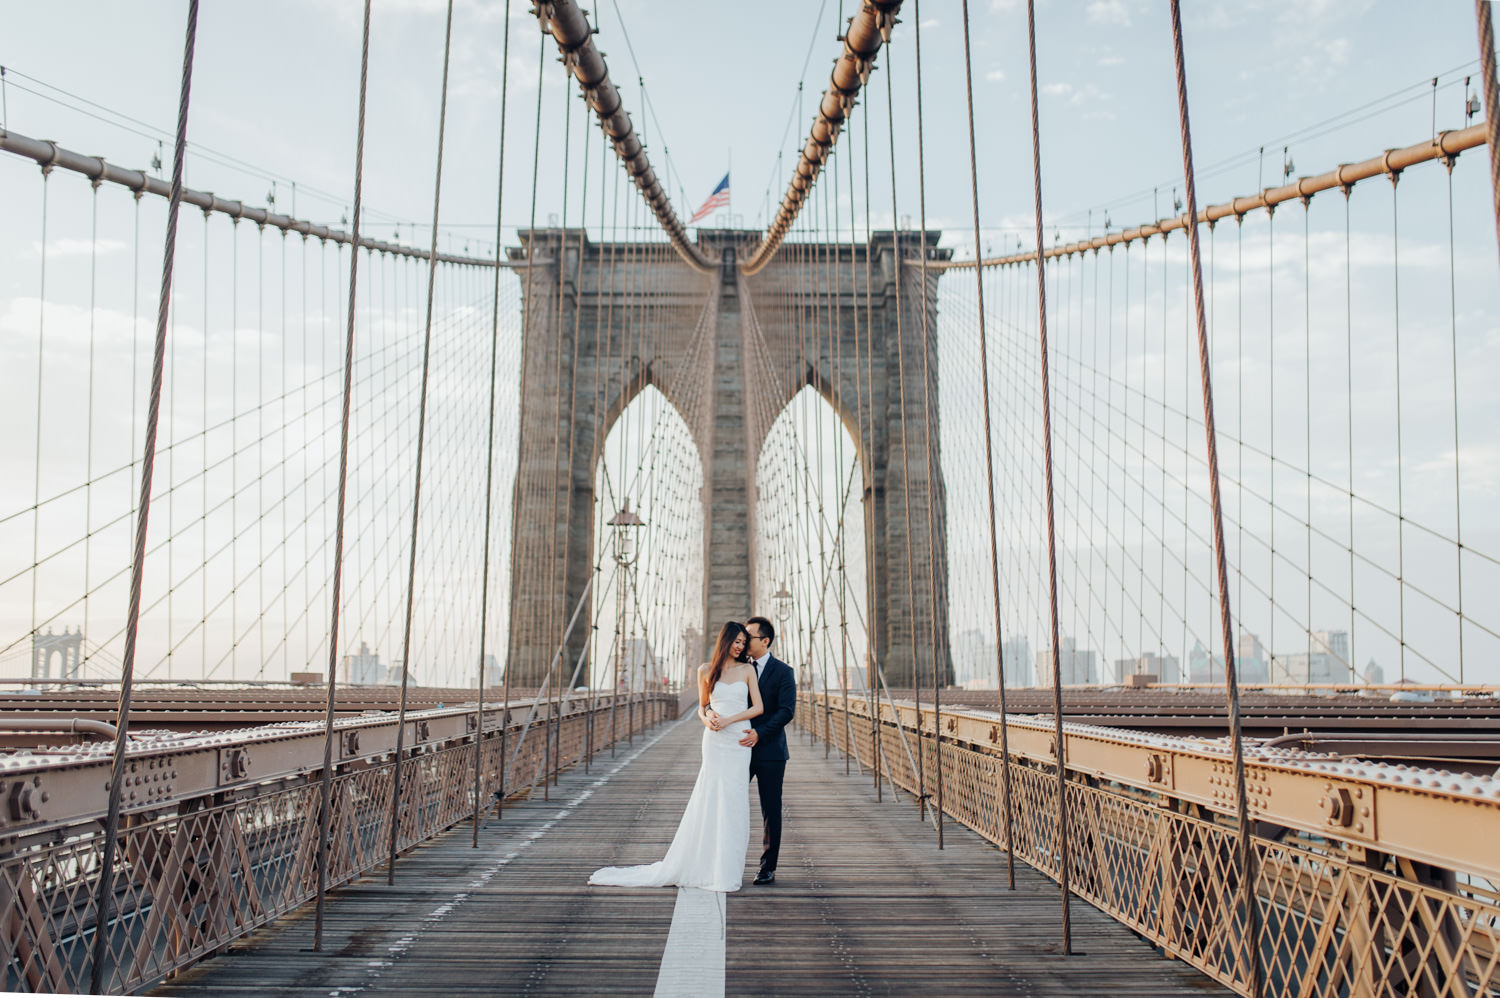 Pre-Wedding Photography Session at the Brooklyn Bridge in New York